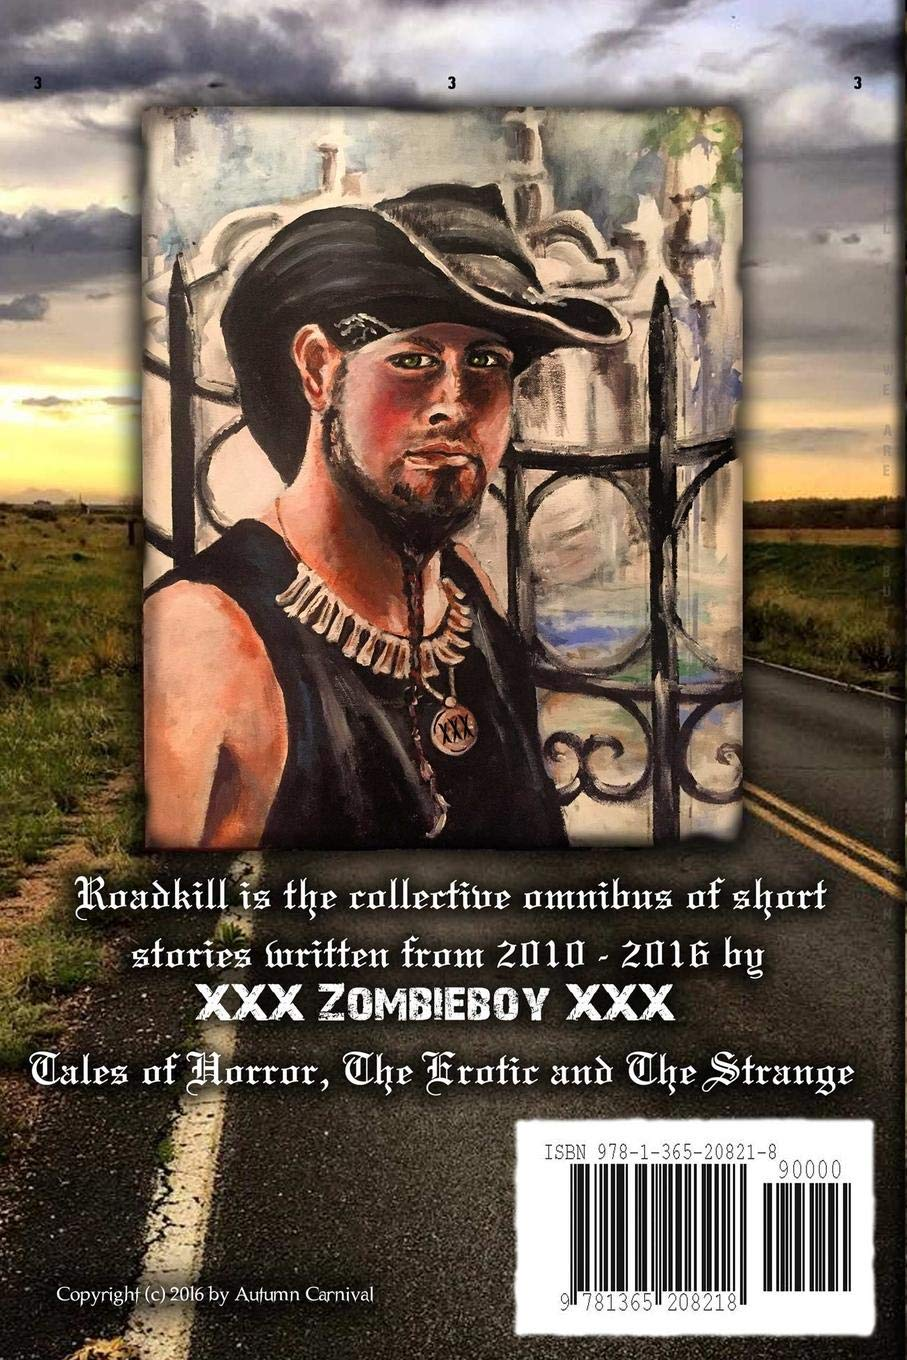 Showing images for roadkill art xxx